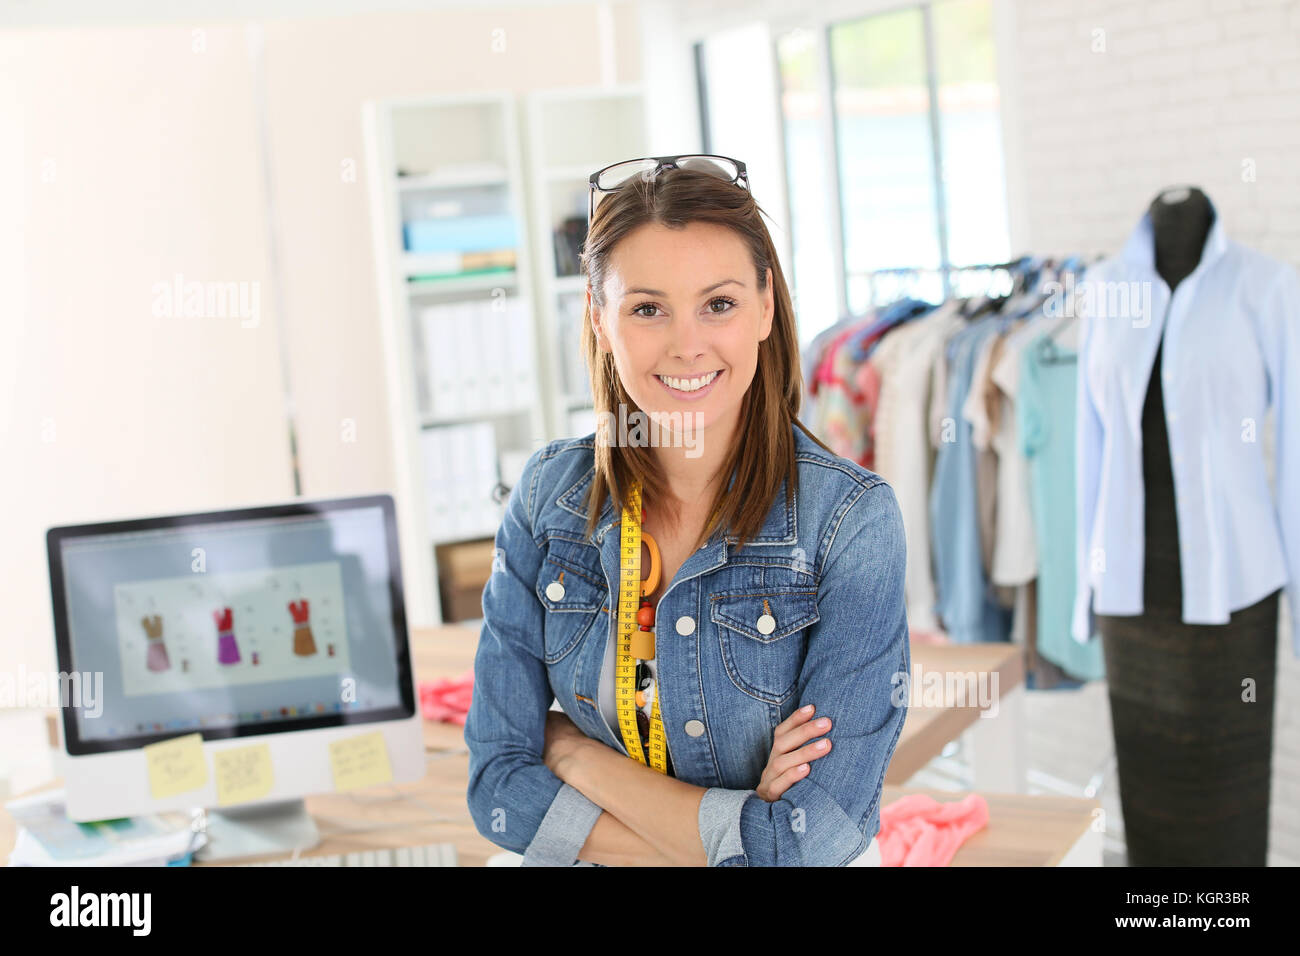 Portrait of smiling fashion designer in studio - Stock Image